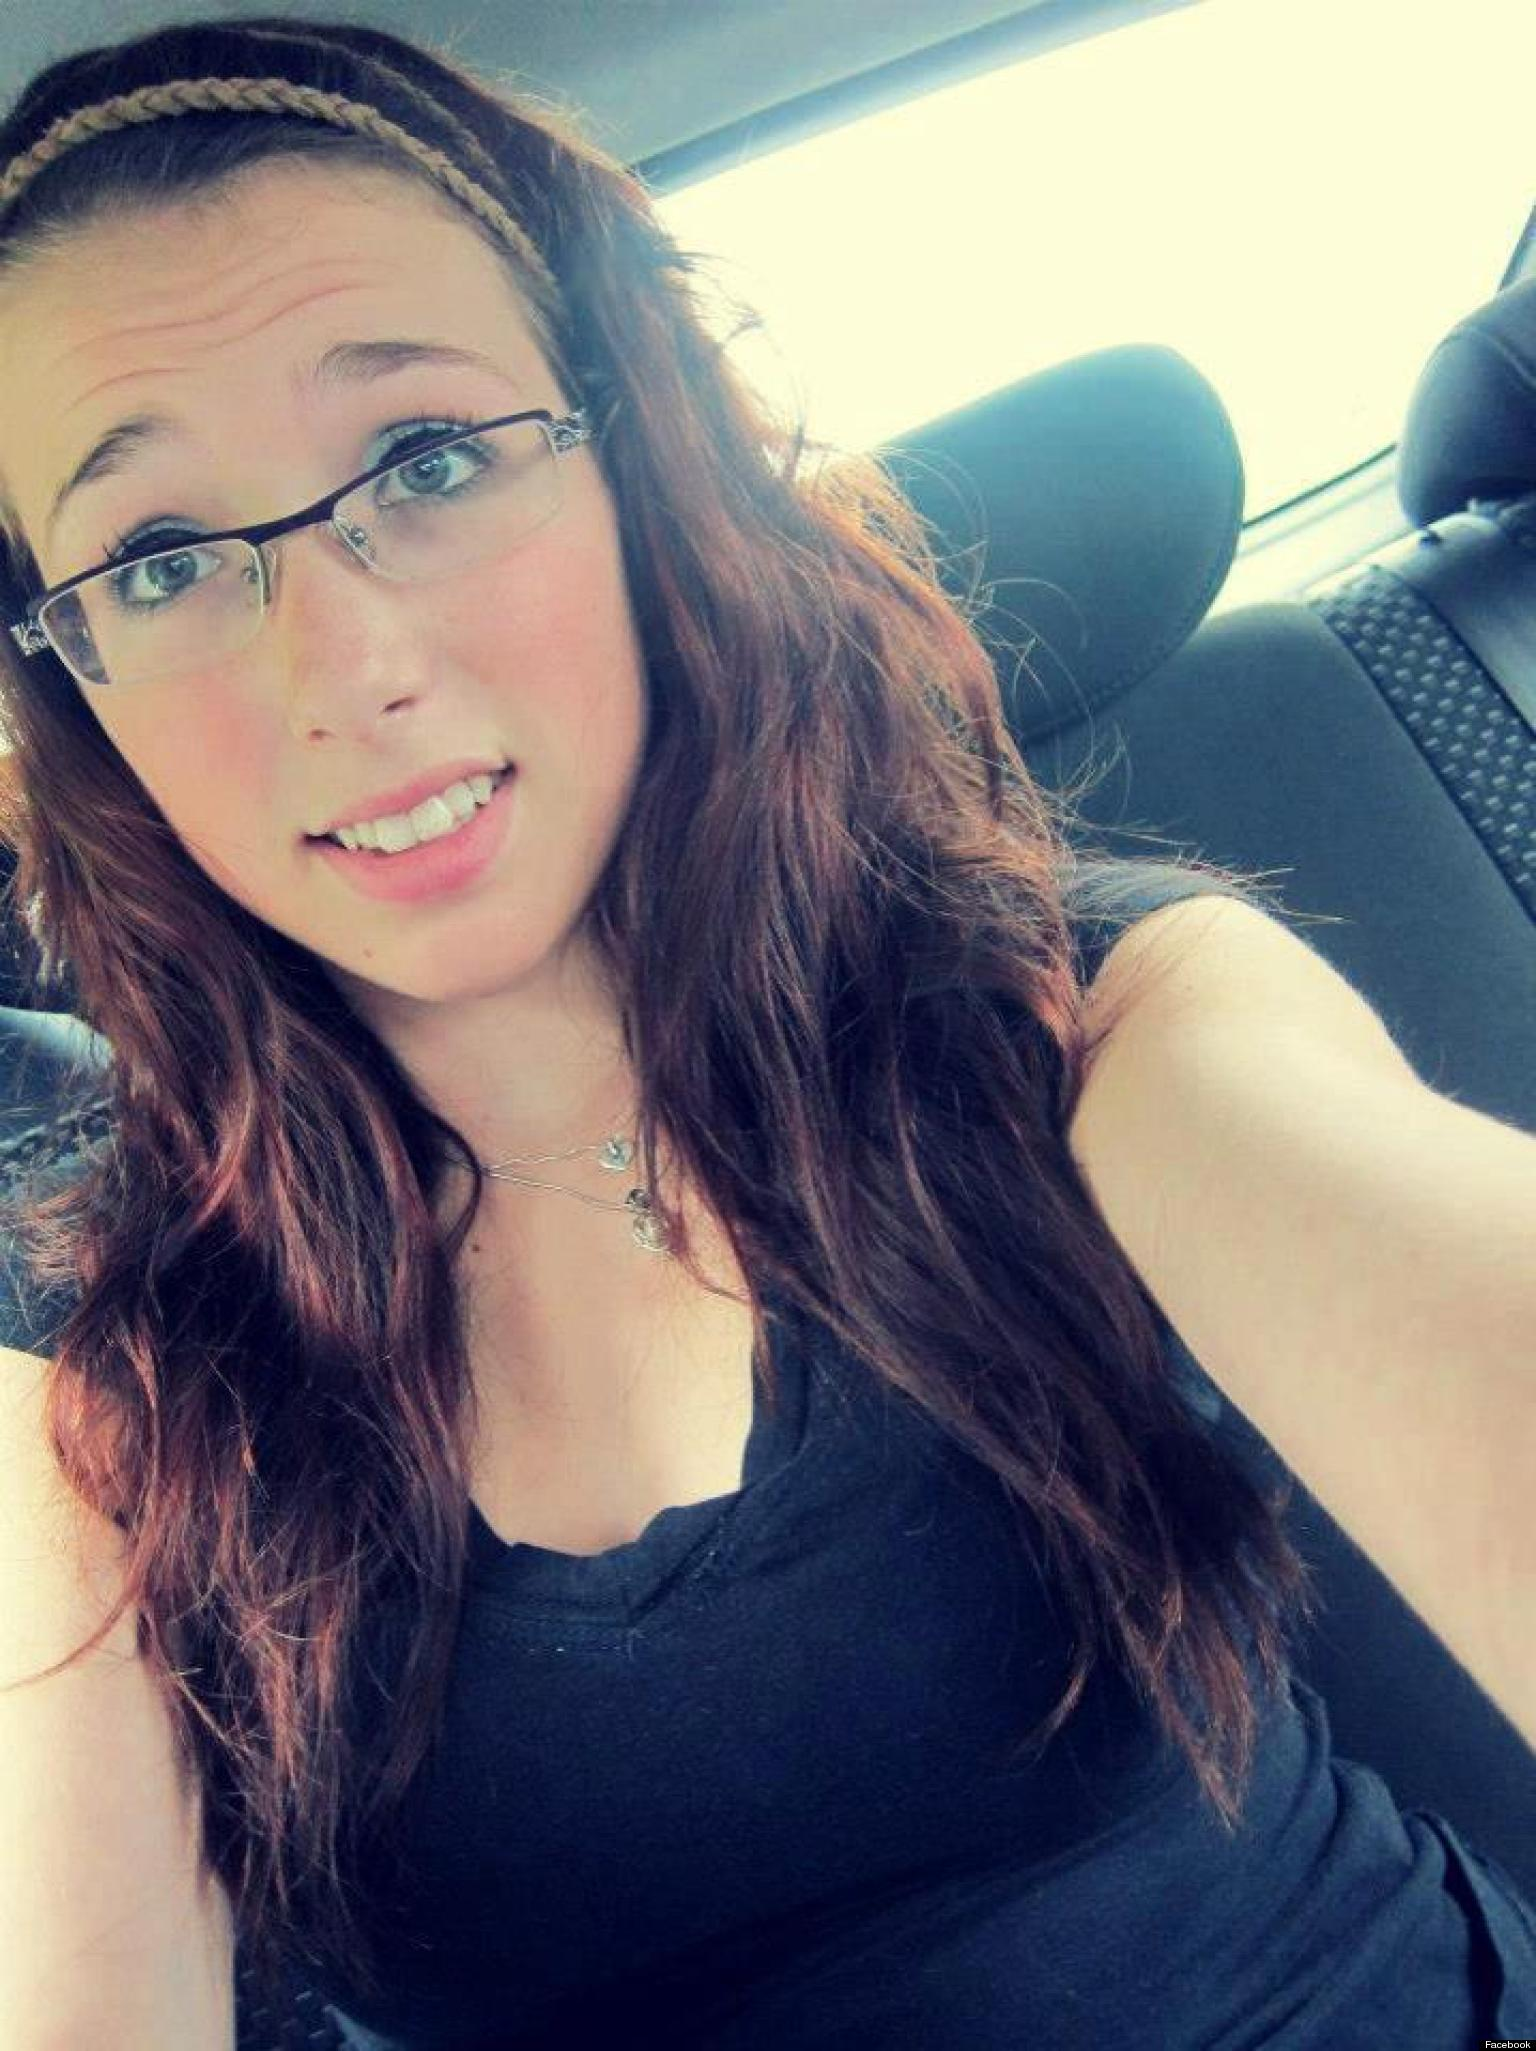 parsons suicide Rehtaeh